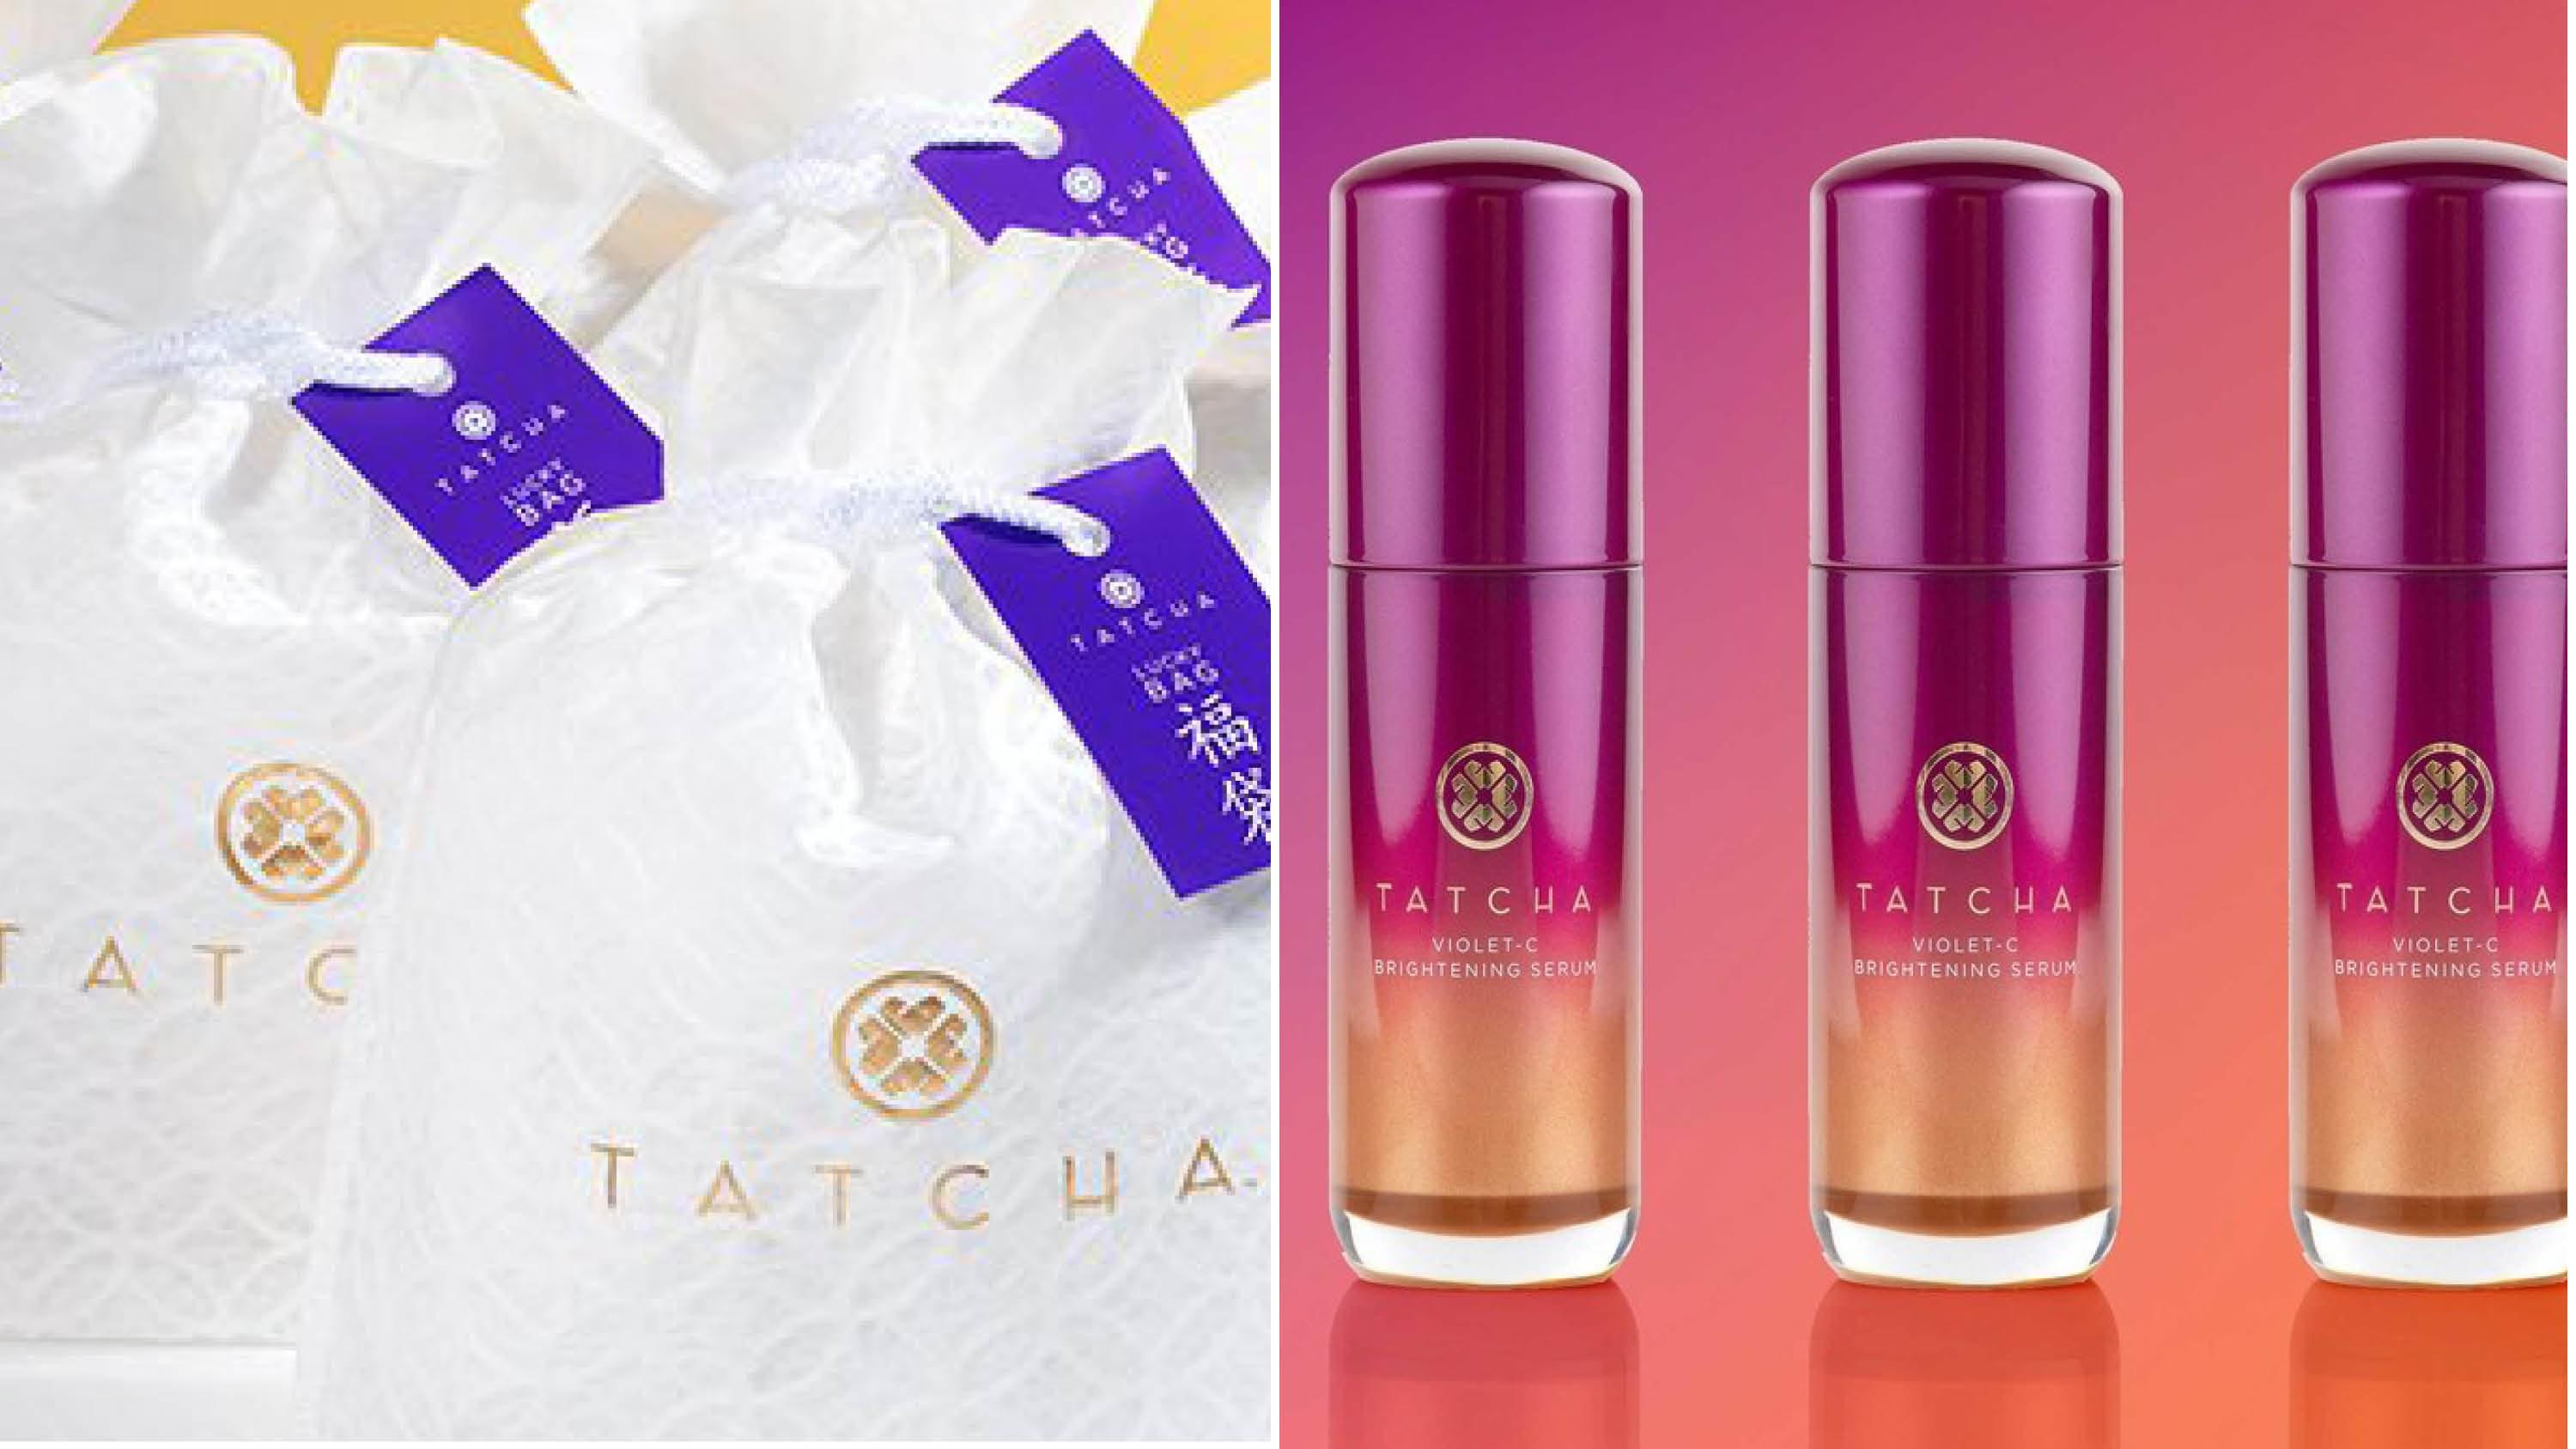 cf67e1f3a1 Tatcha Is Giving Out Mystery Bags of Skin Care Worth Over $100 — But ...